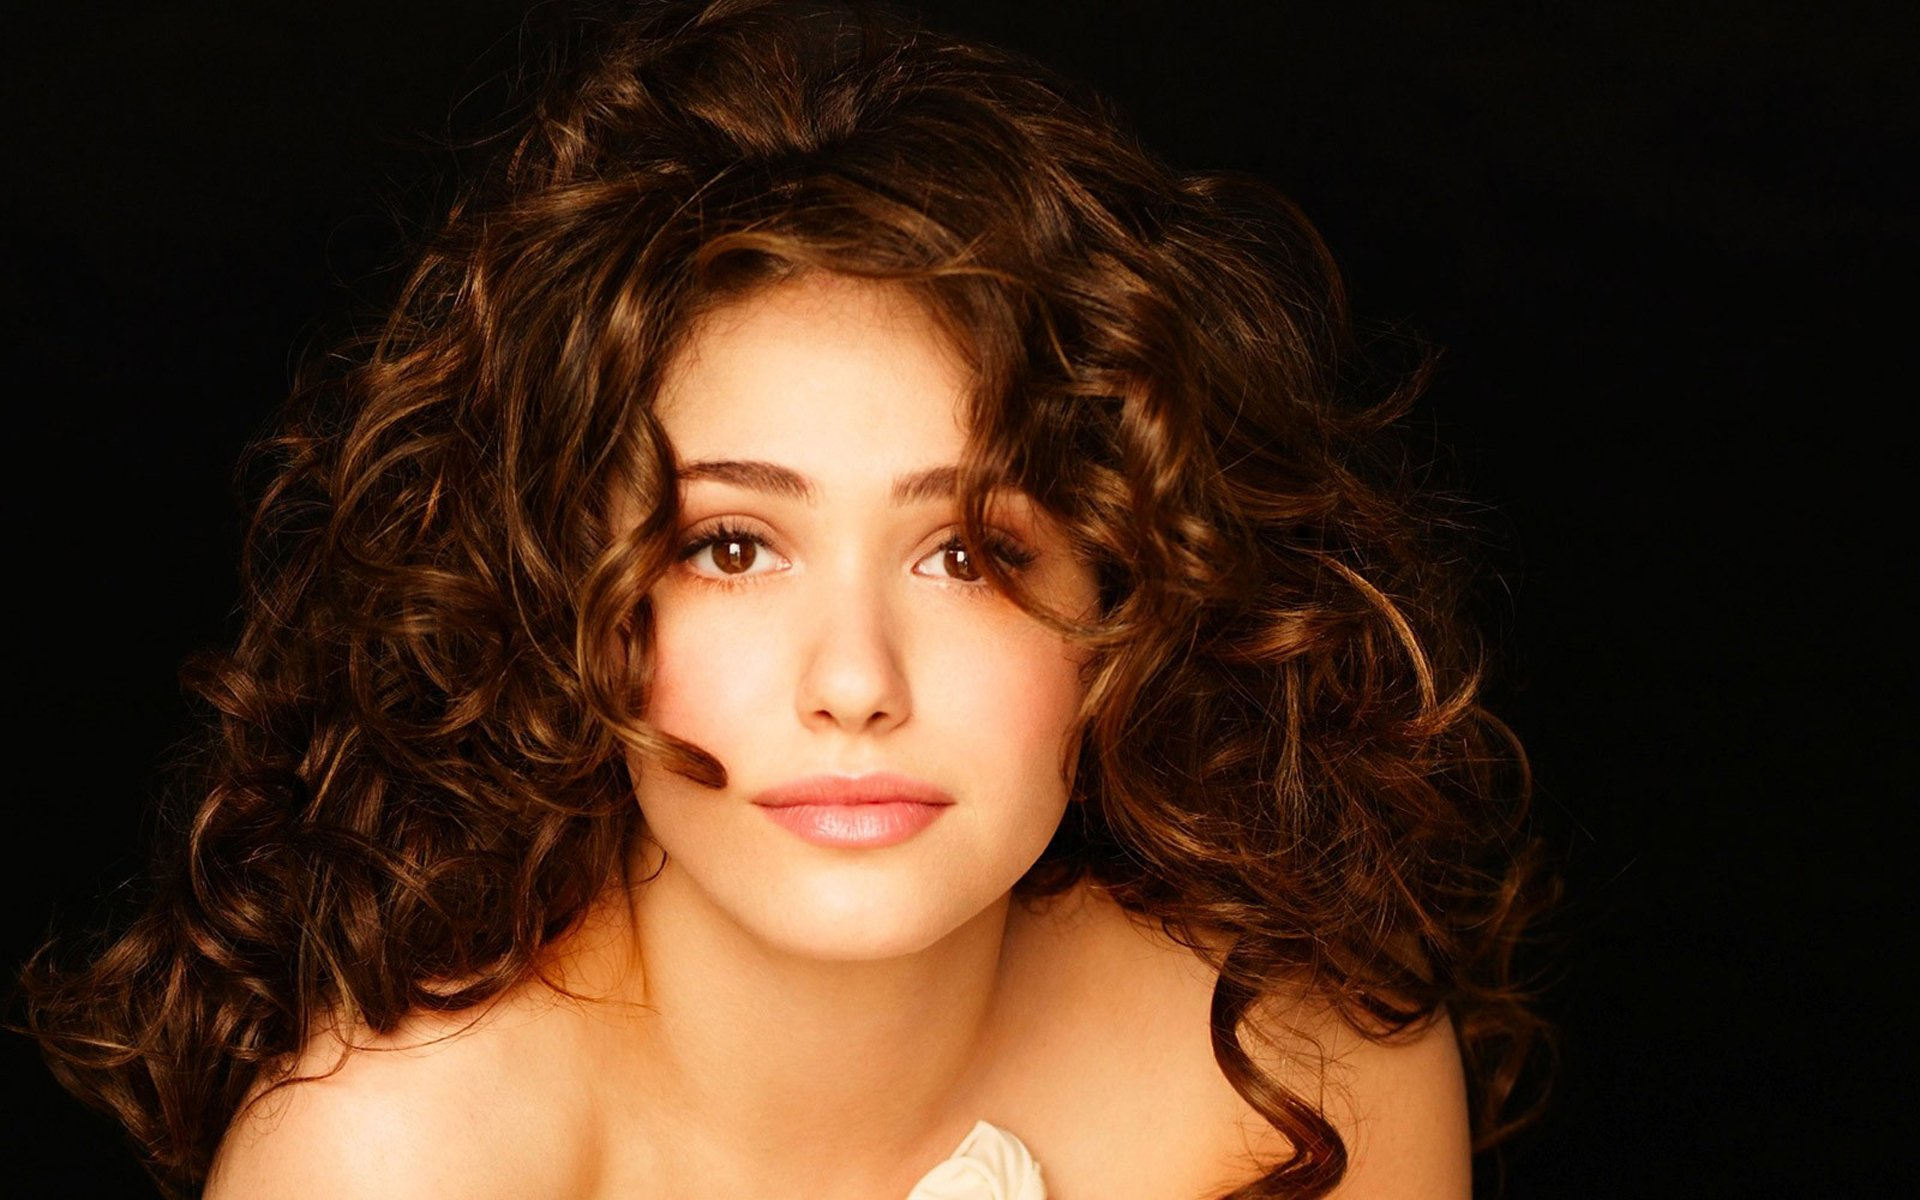 44 emmy rossum hd wallpapers | background images - wallpaper abyss